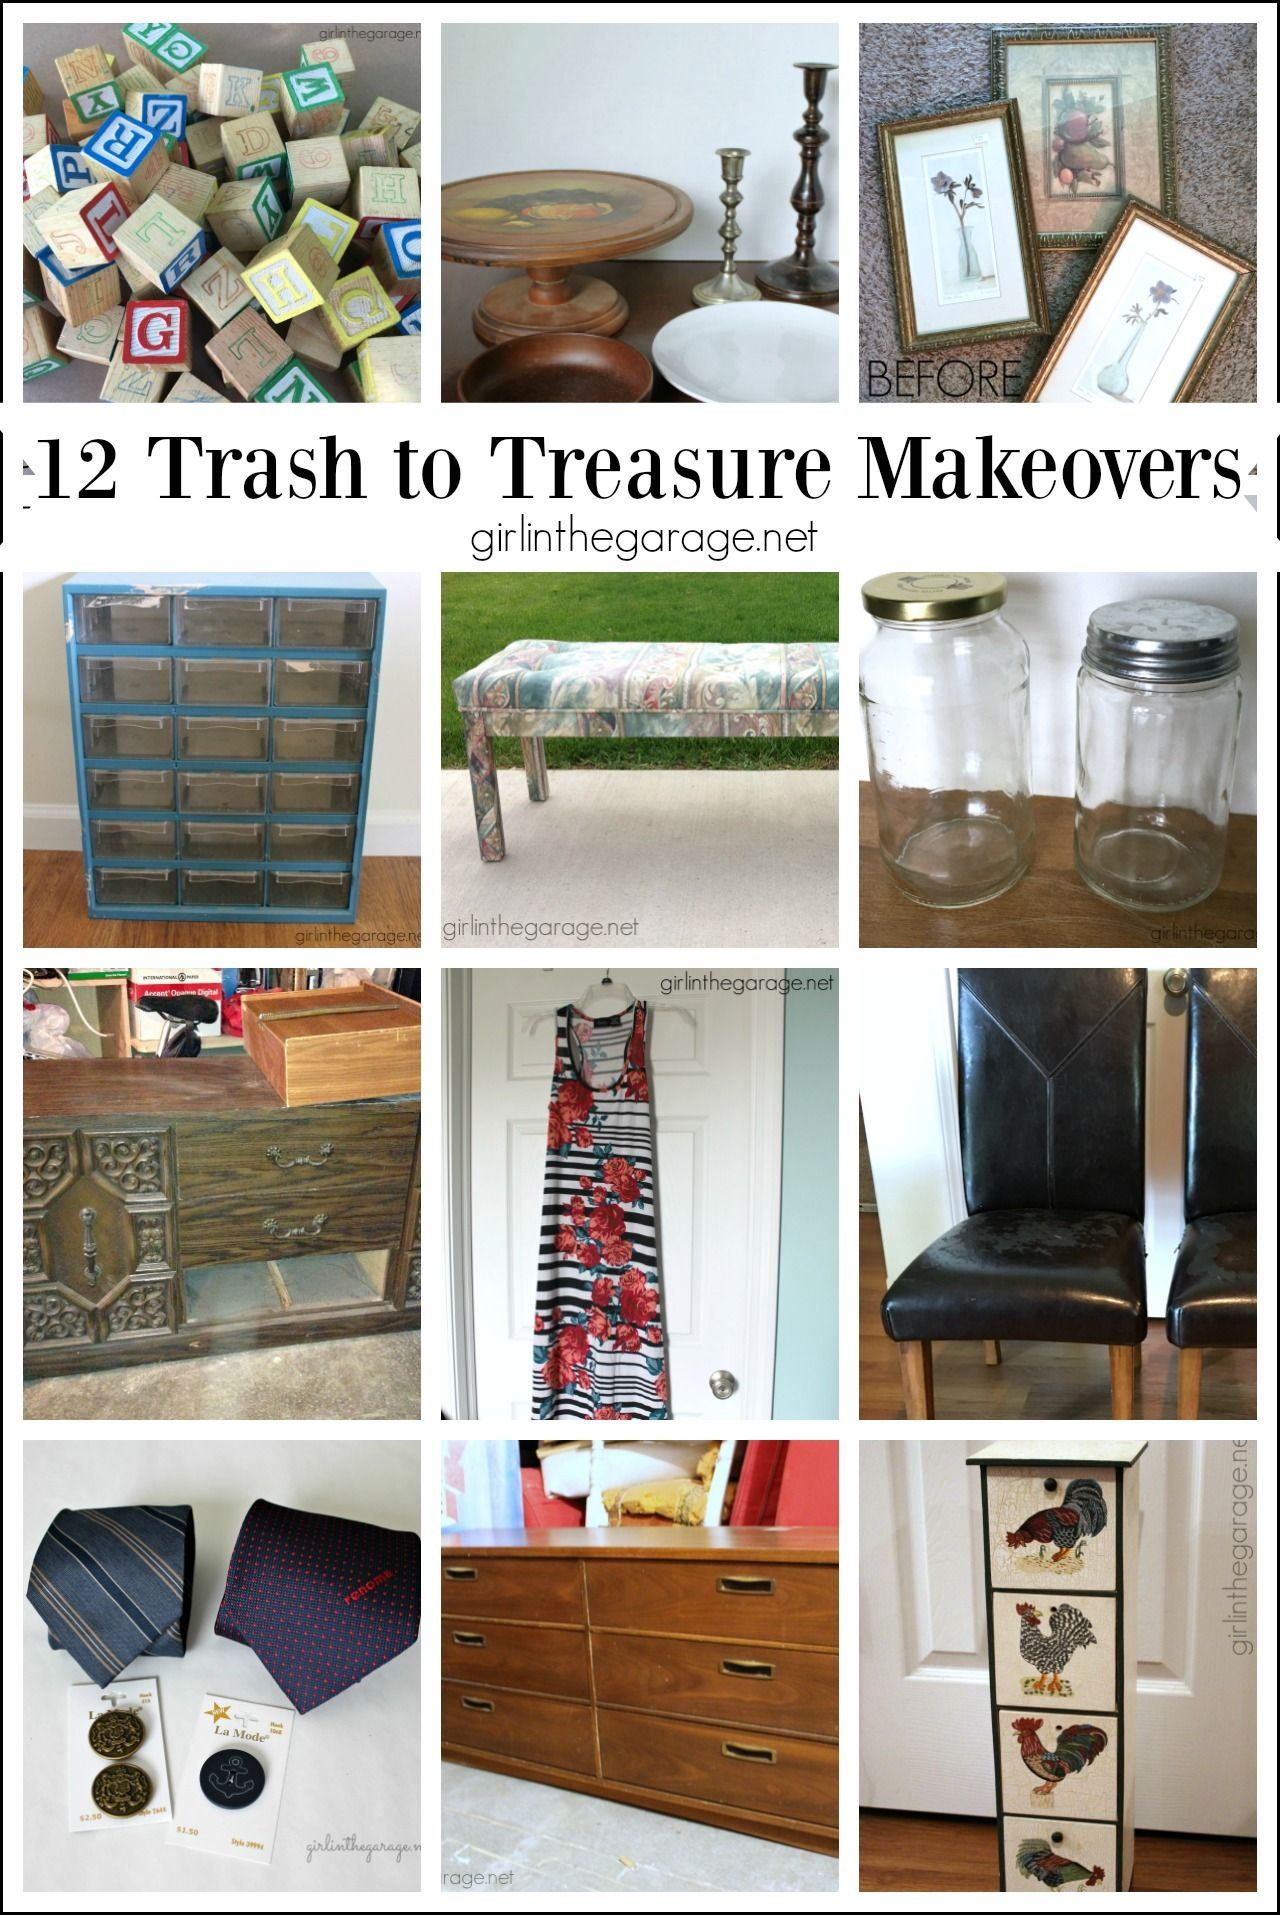 12 Clever Trash to Treasure Makeovers #thriftstorefinds